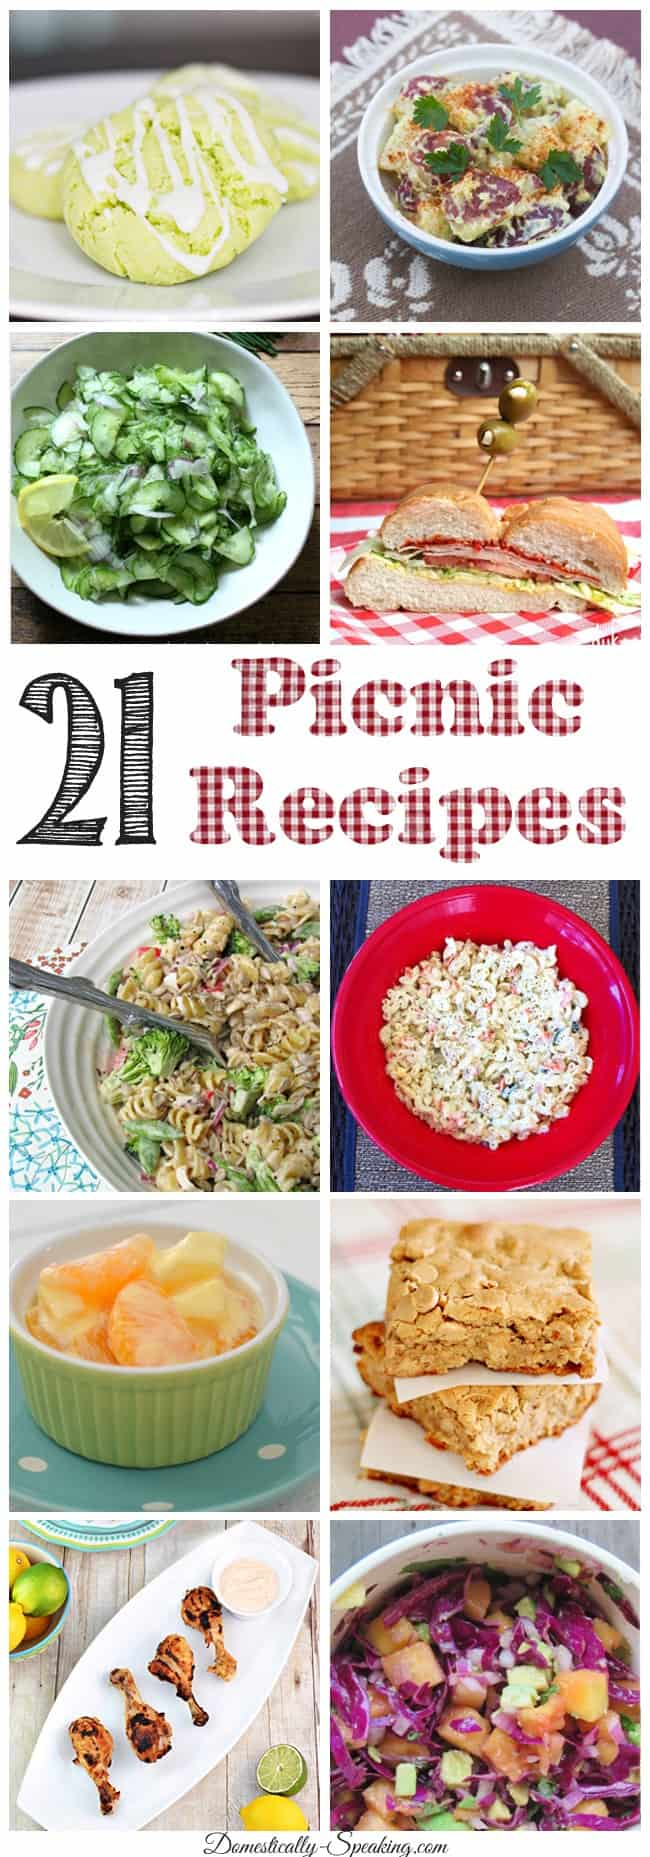 21 Picnic Recipes